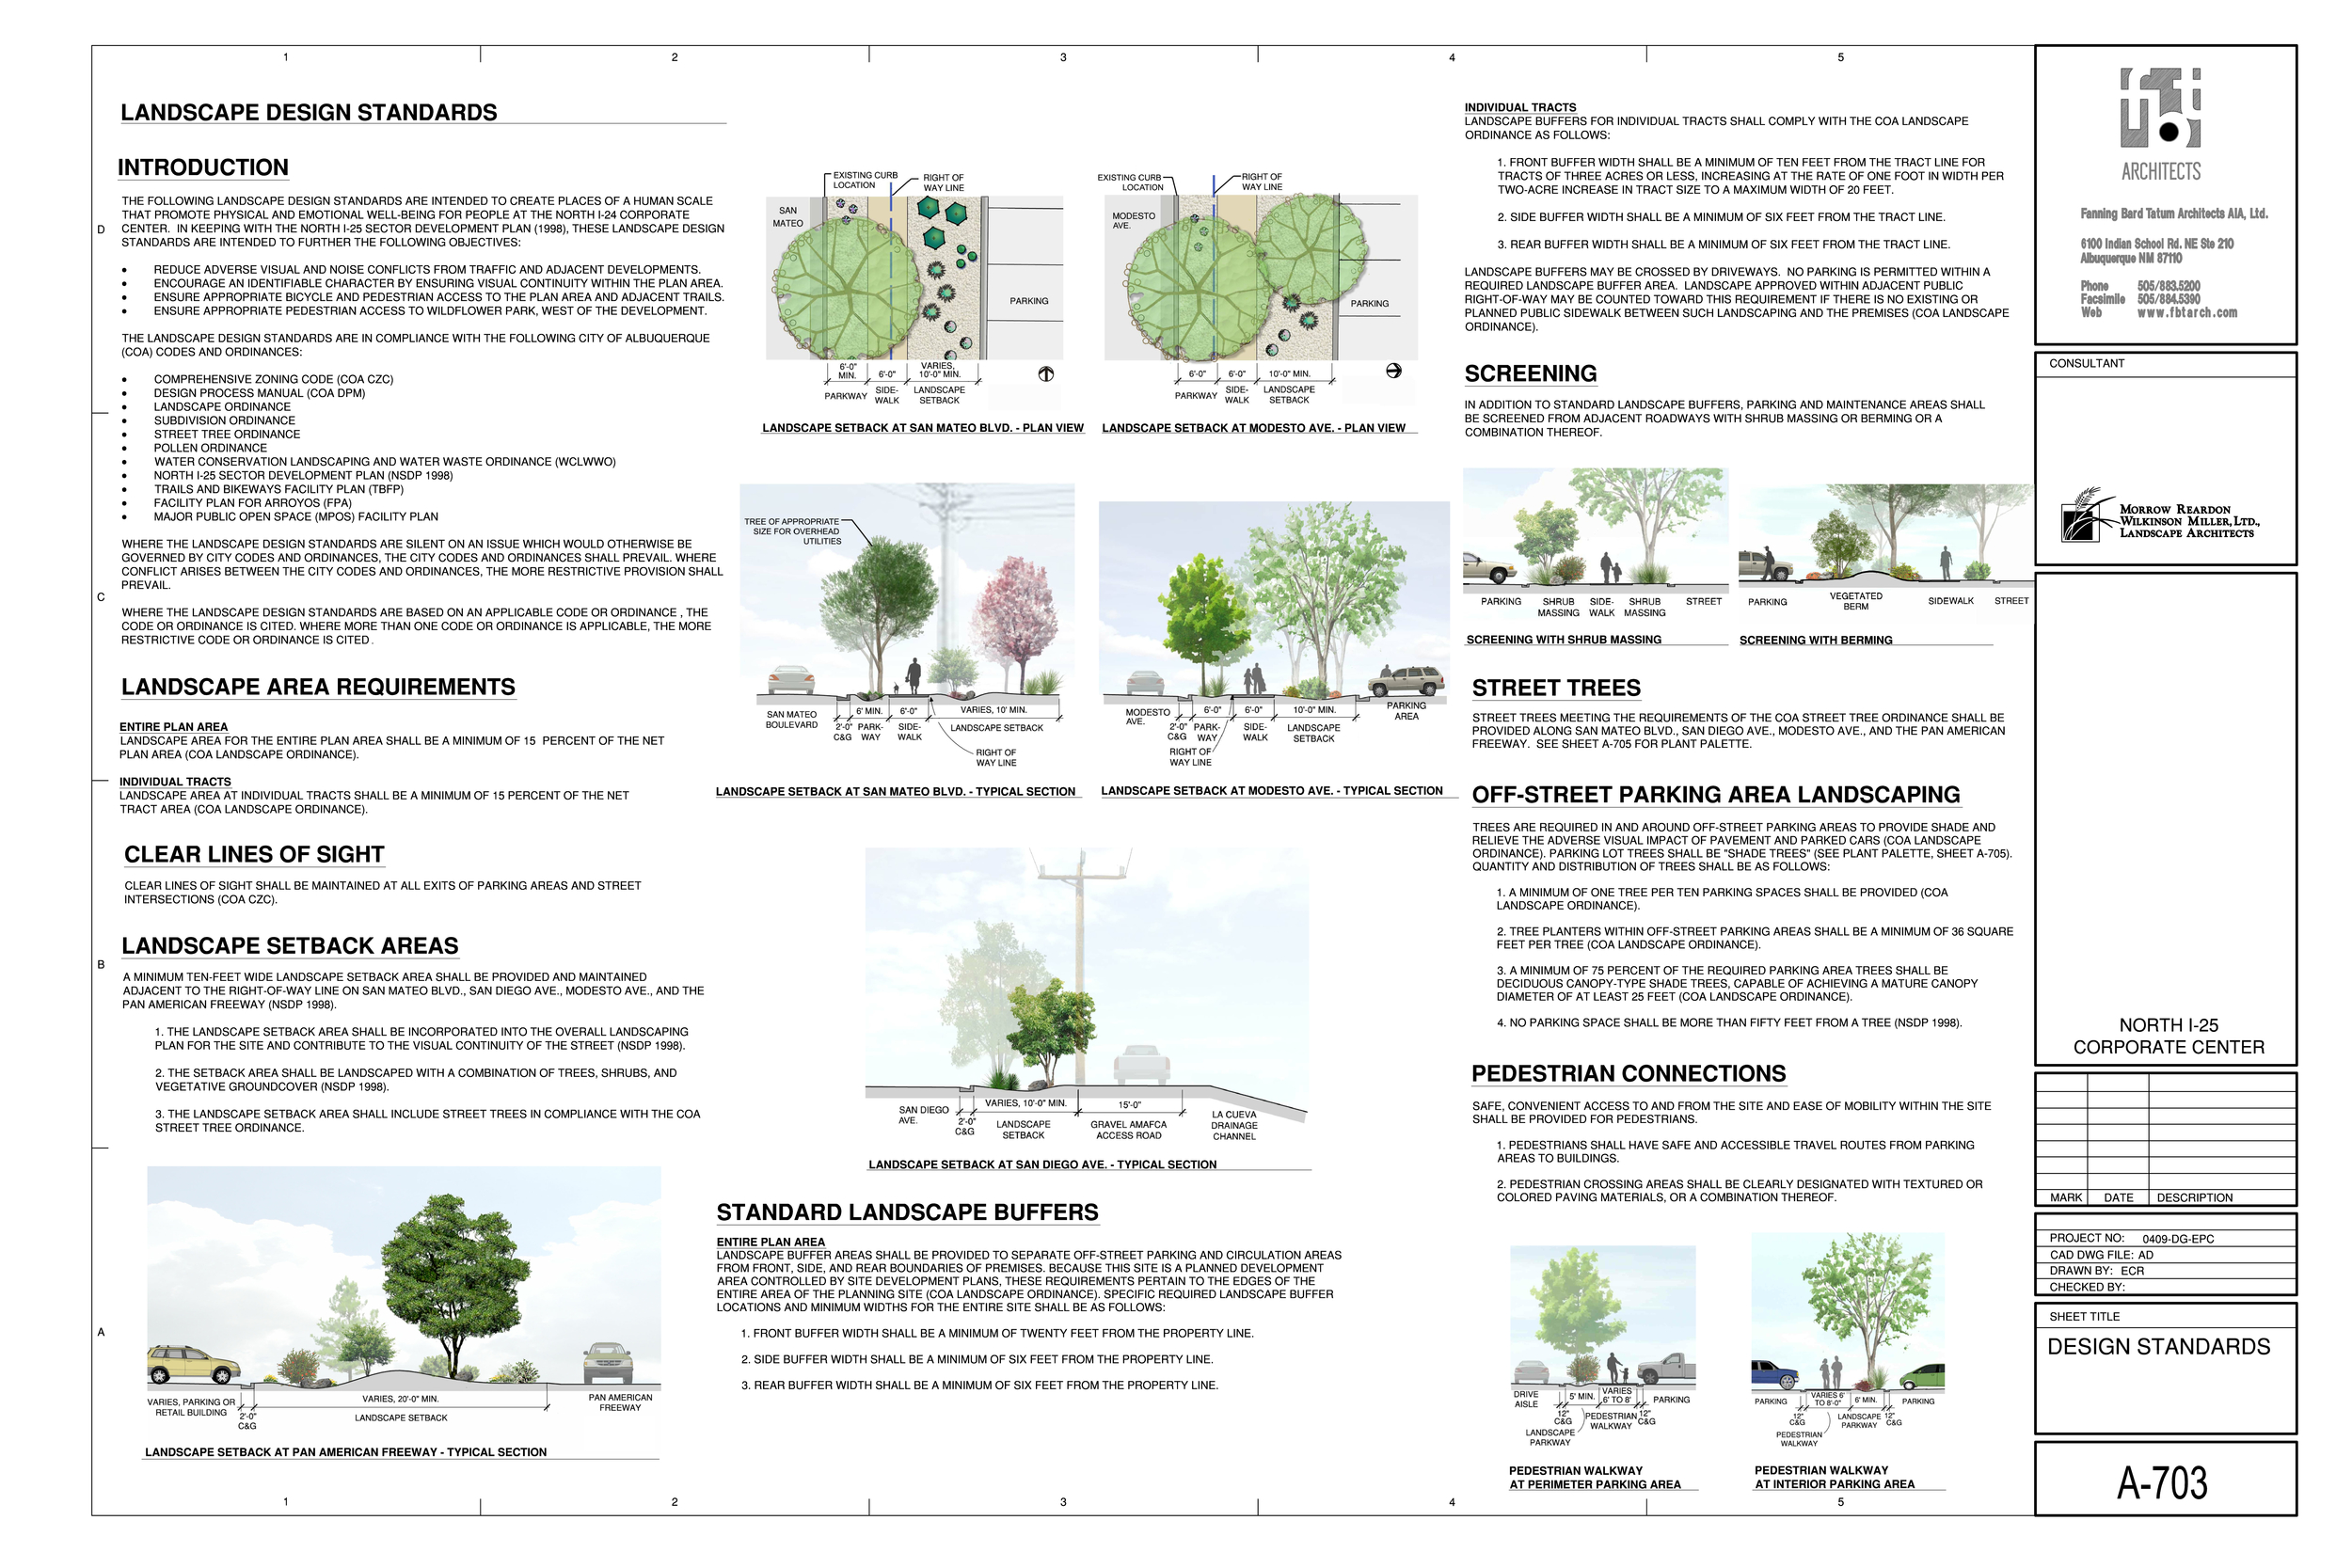 Design standards for landscape at corporate center